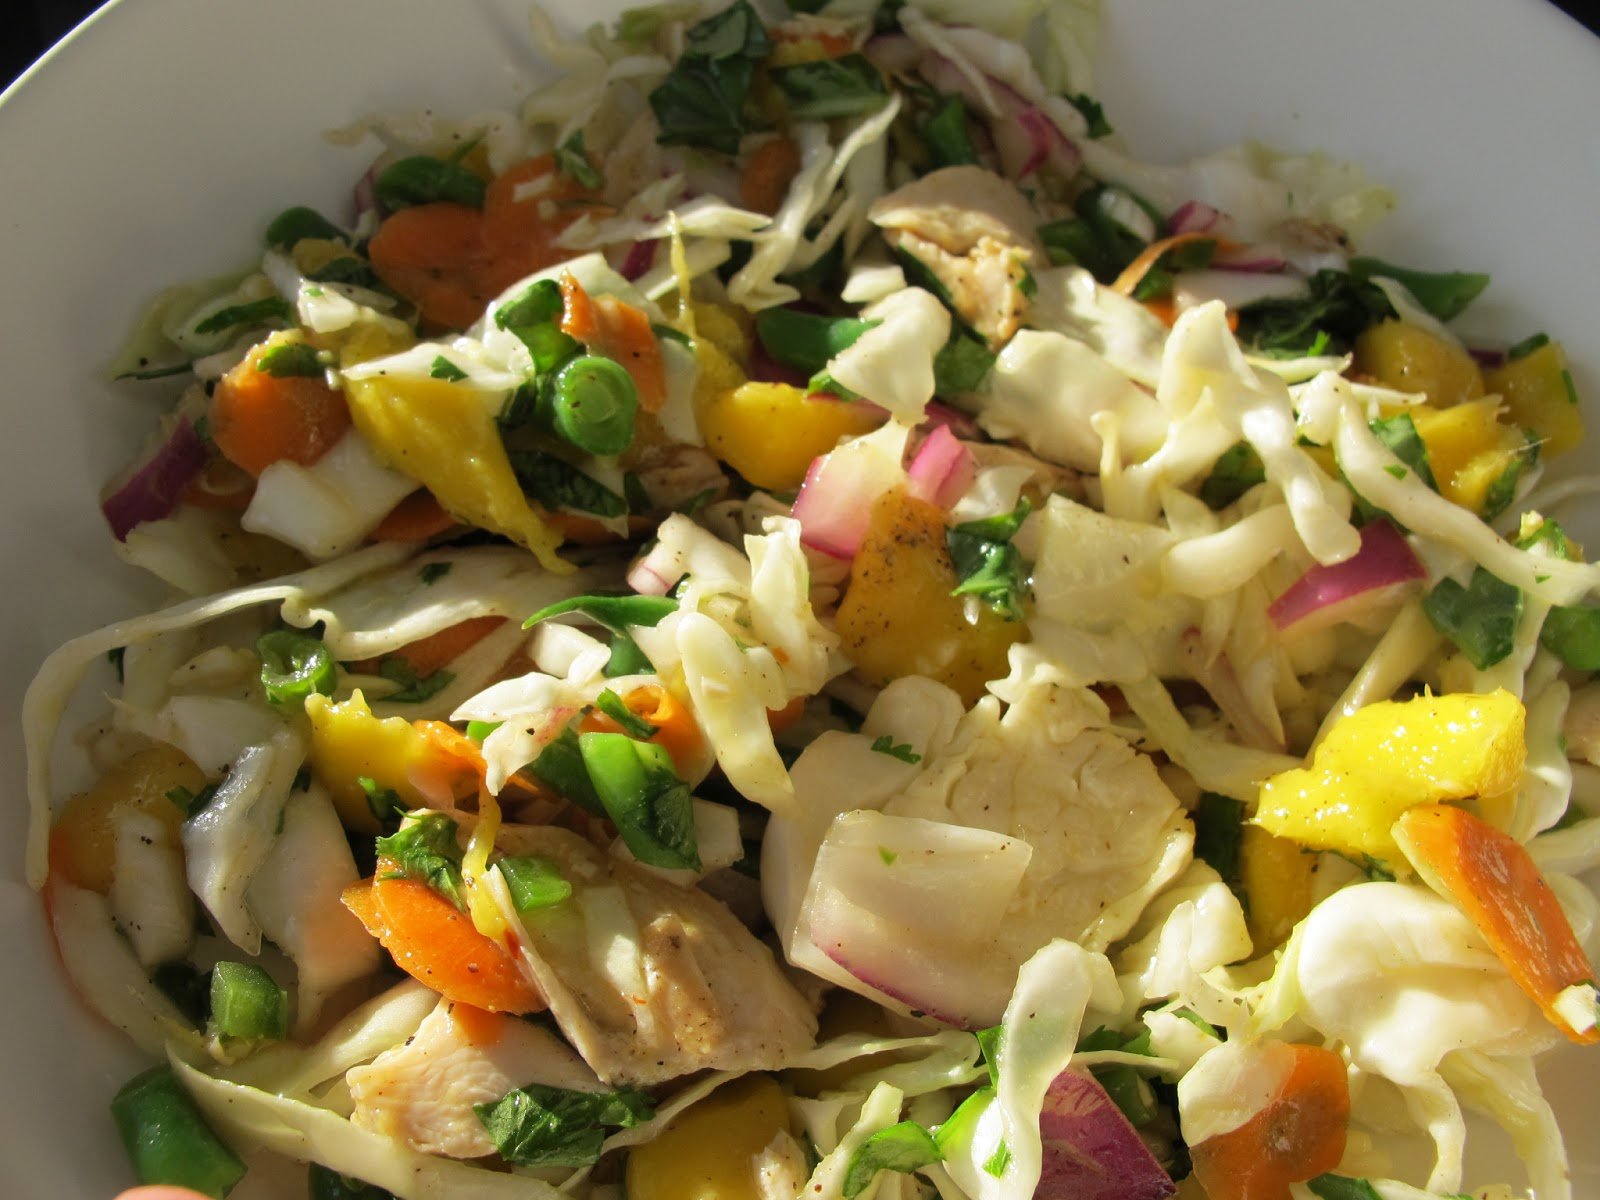 More time at the table vietnamese chicken salad with mango for Healthwise fish oil